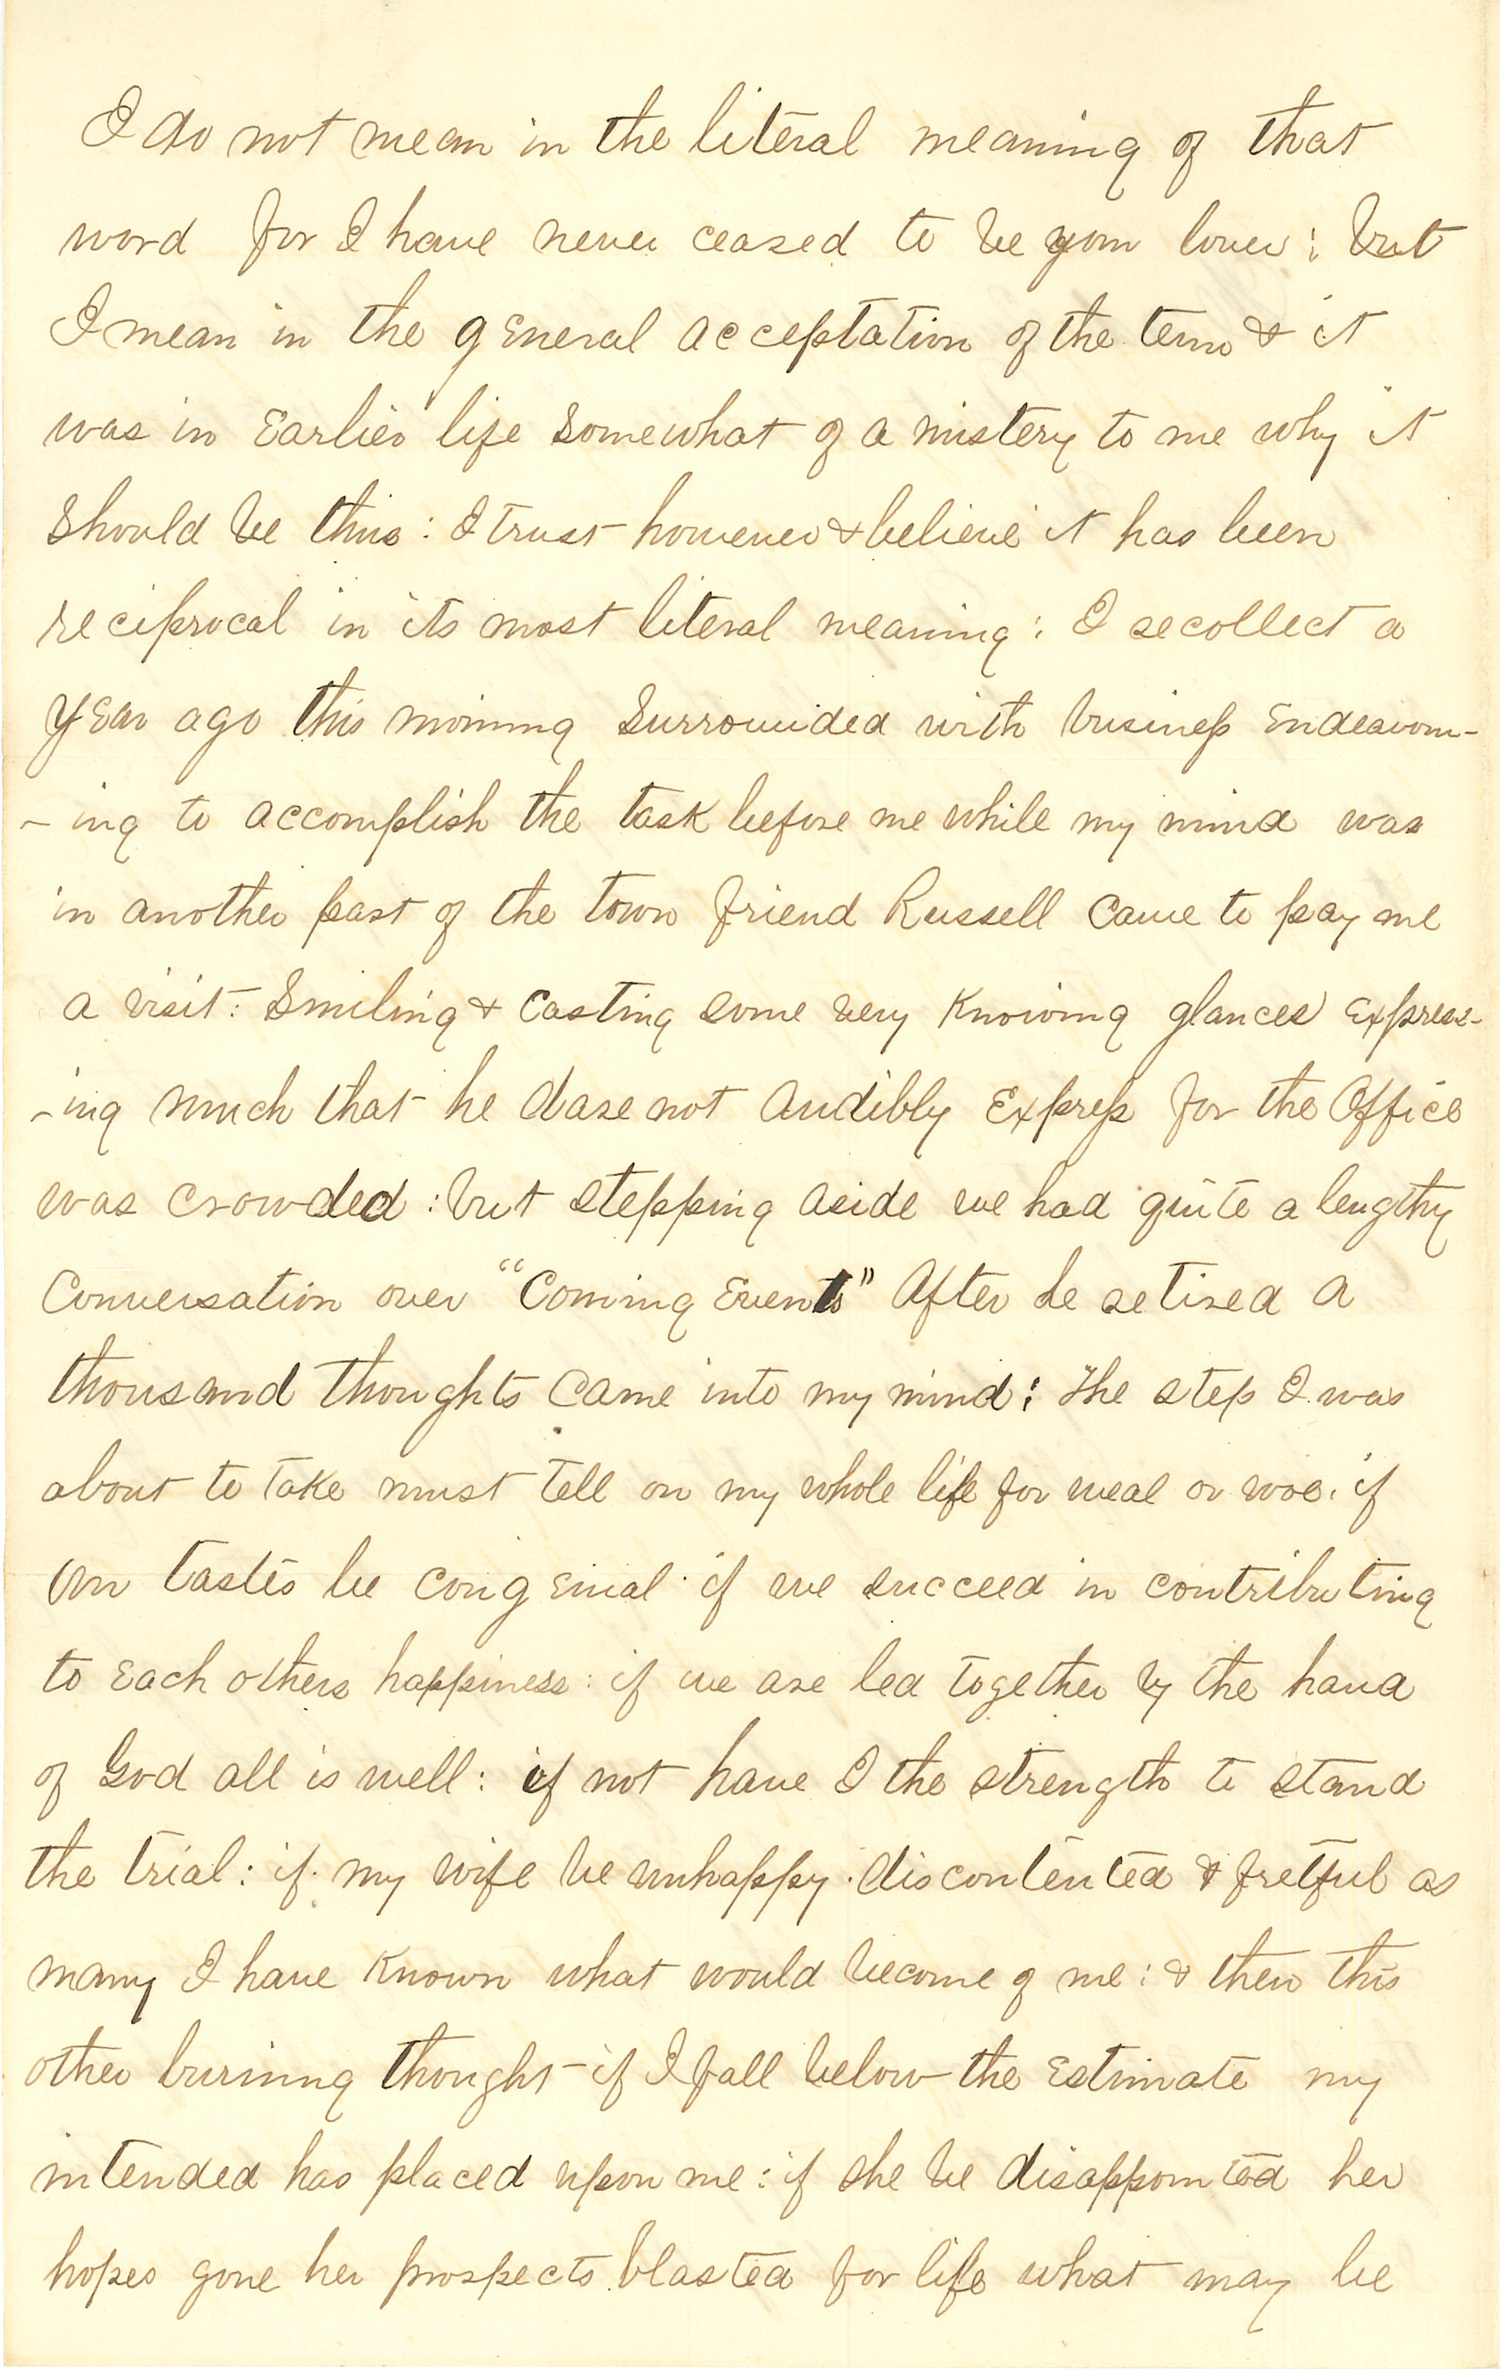 Joseph Culver Letter, December 12, 1862, Page 2